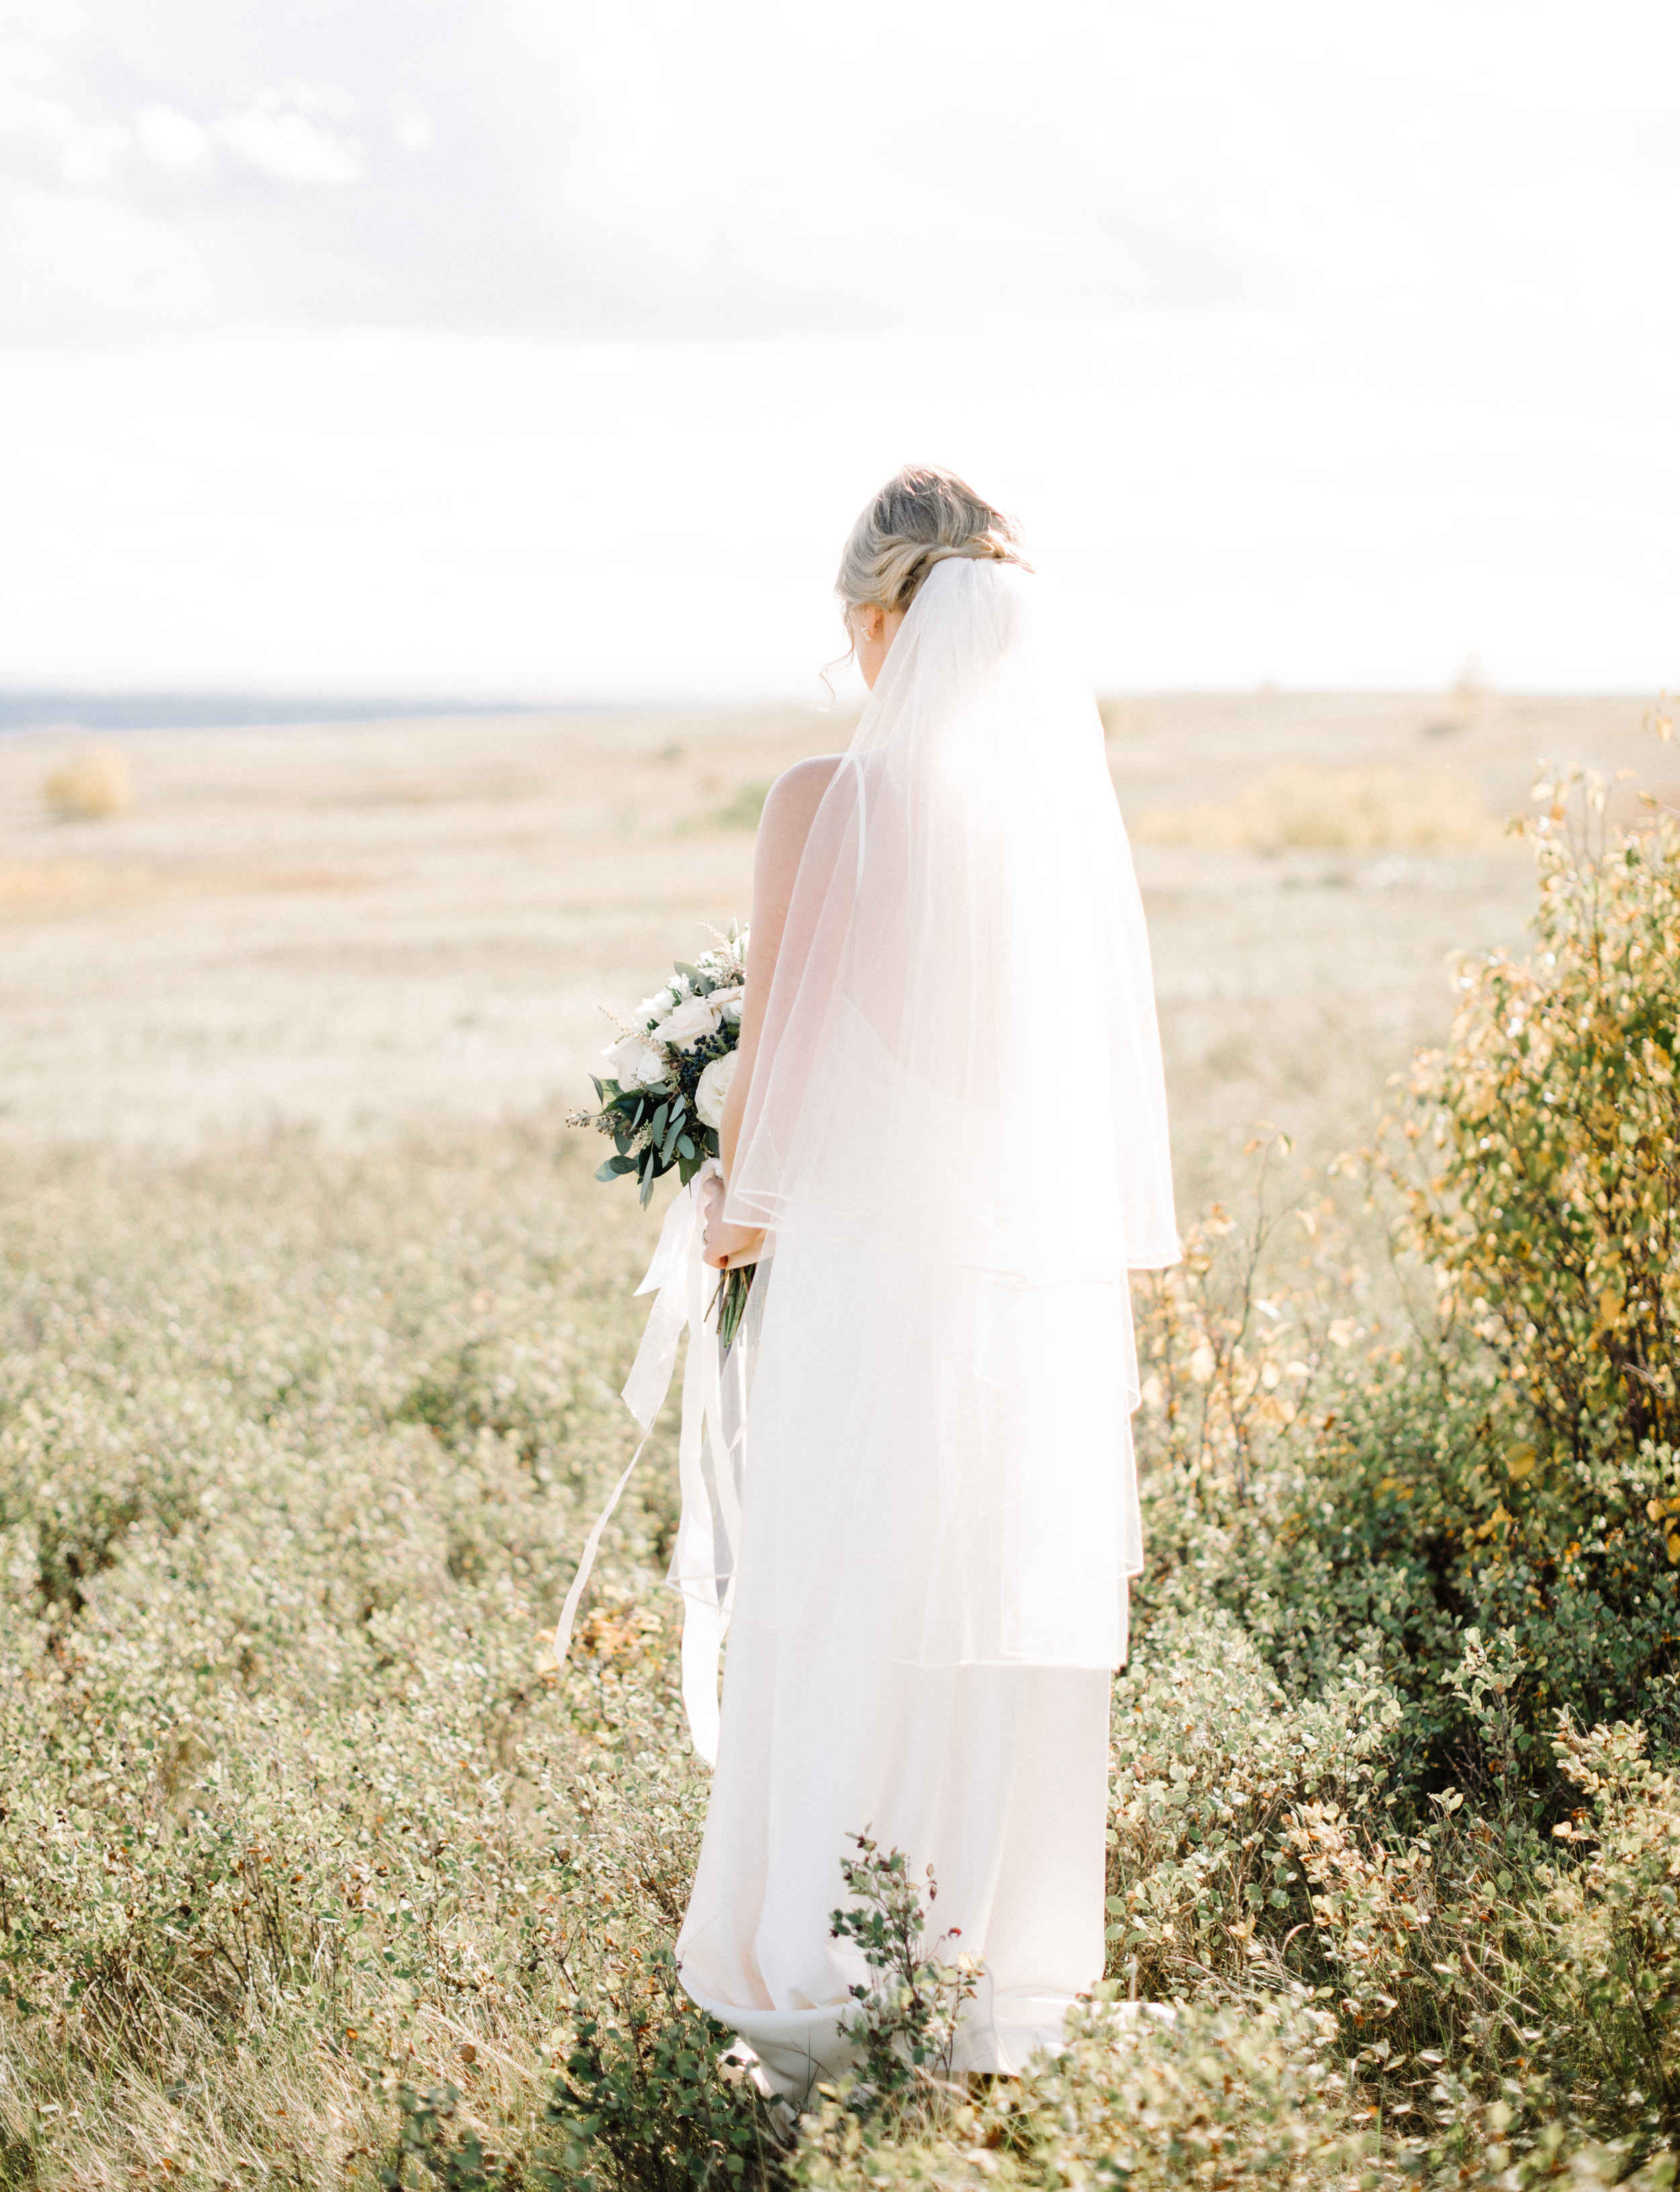 014-calgary_wedding_photographers.jpg